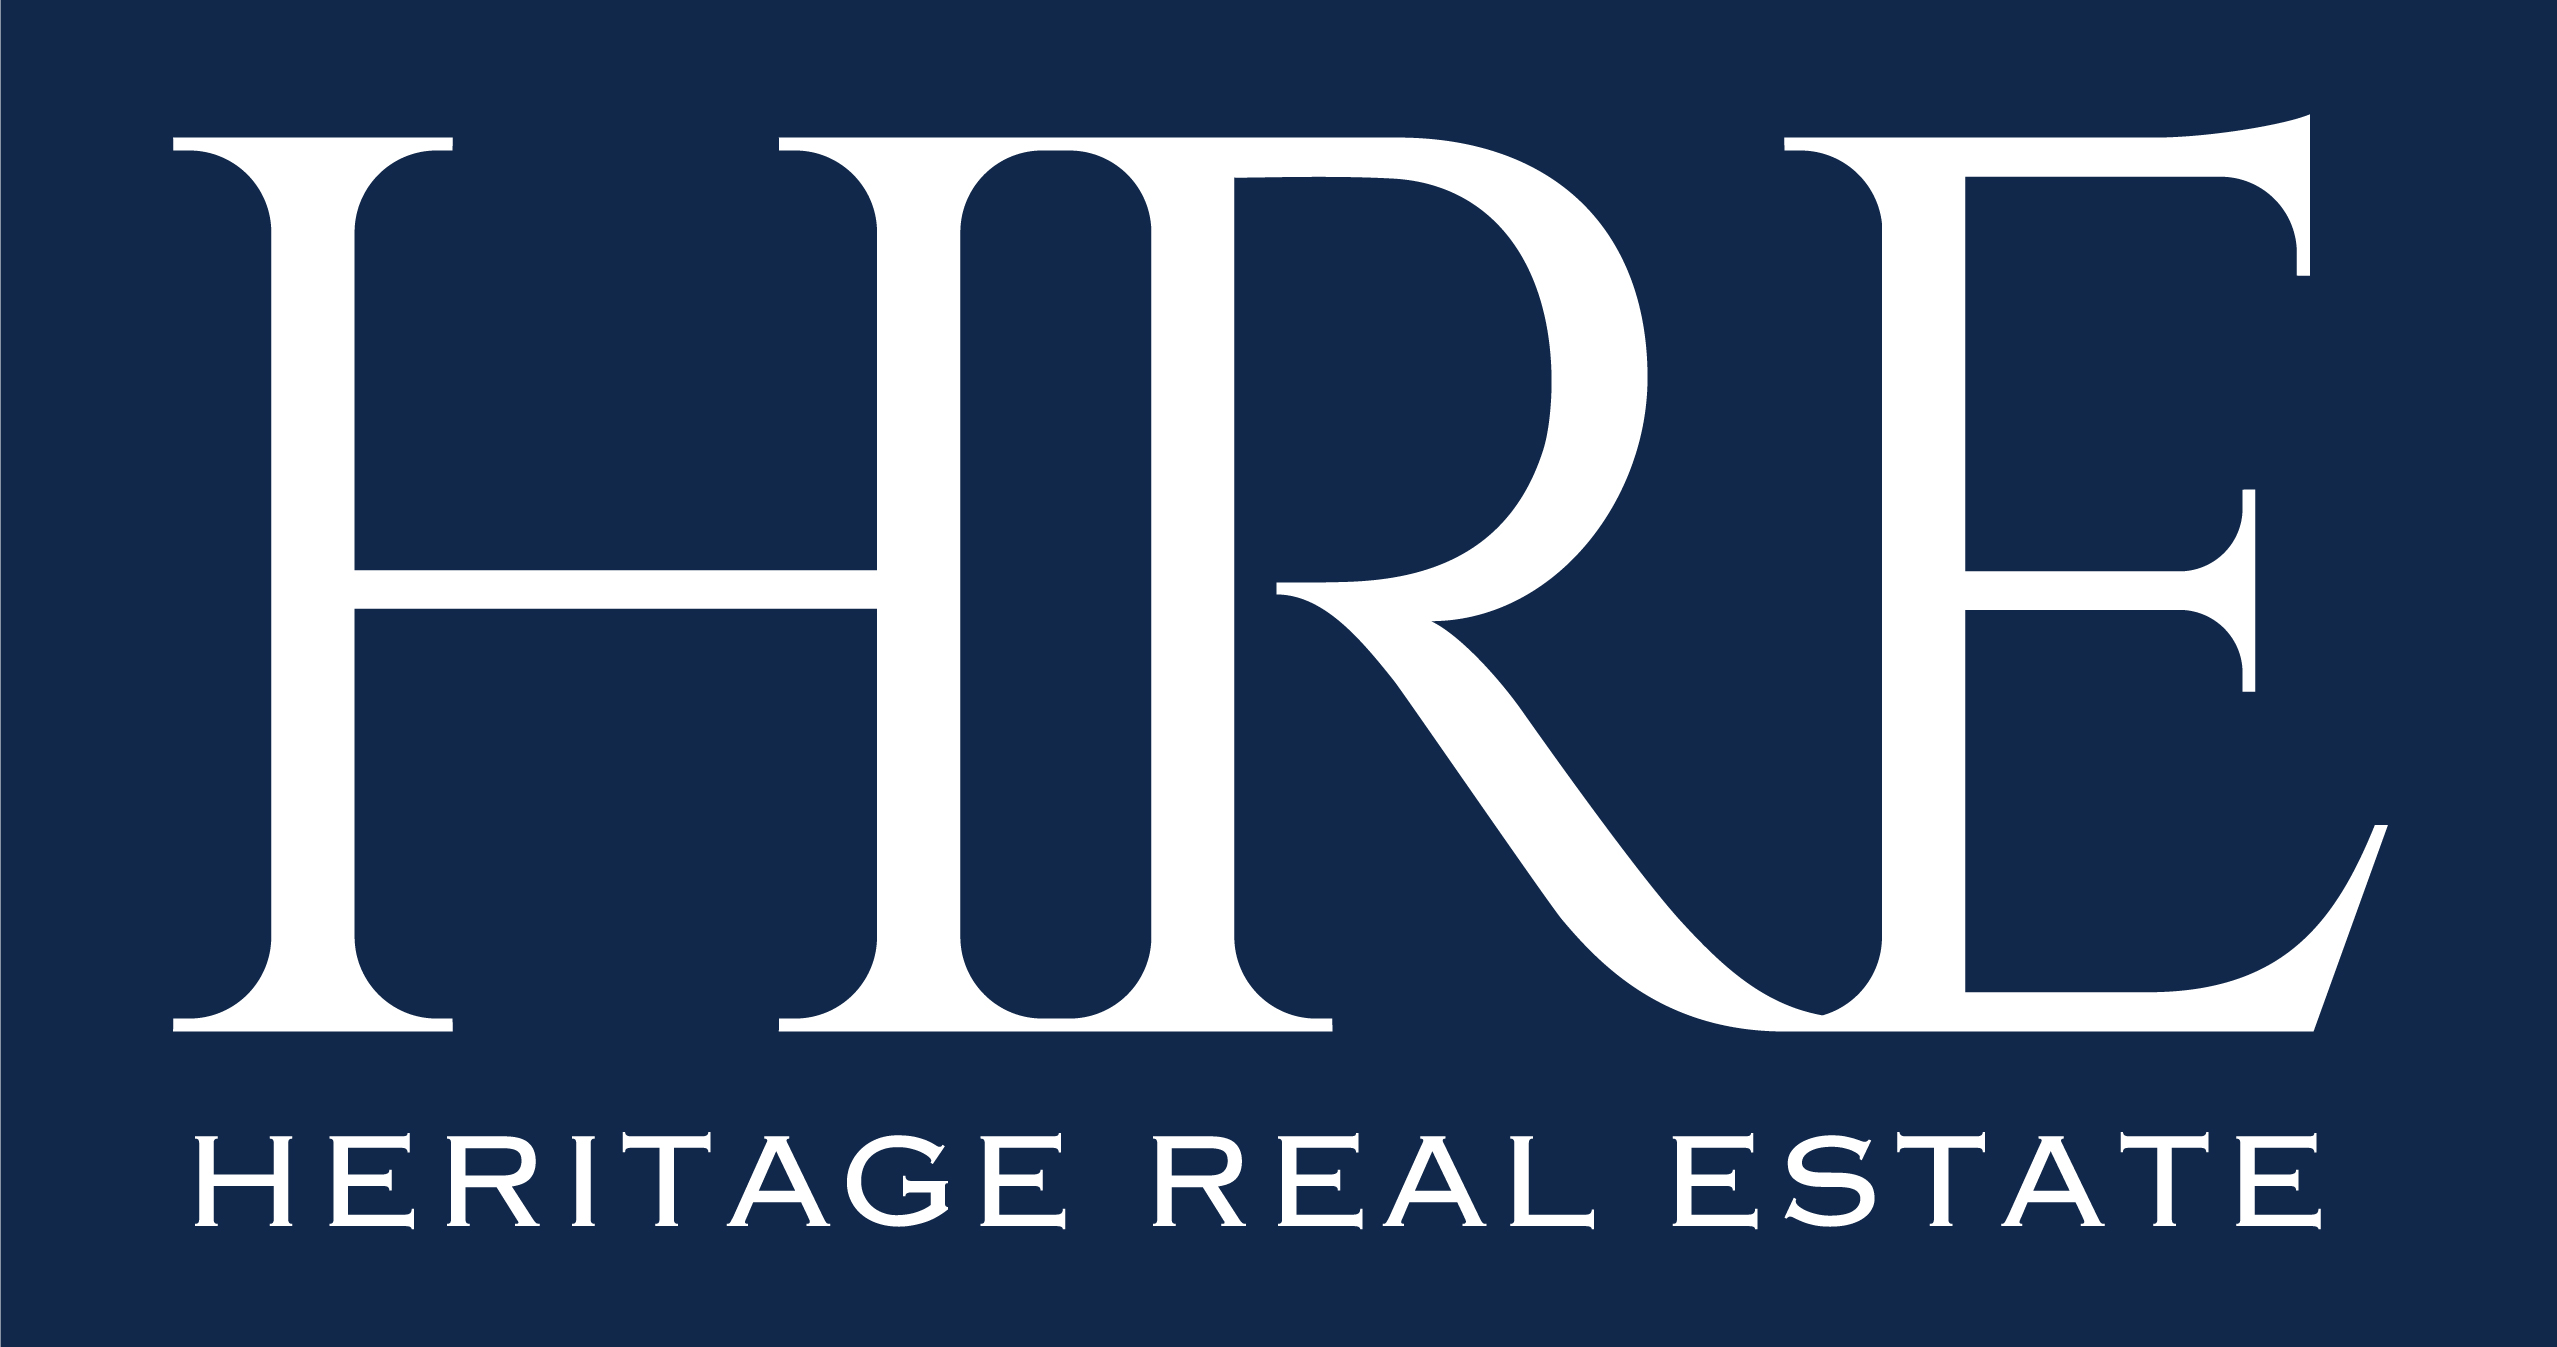 Heritage Real Estate, LLC